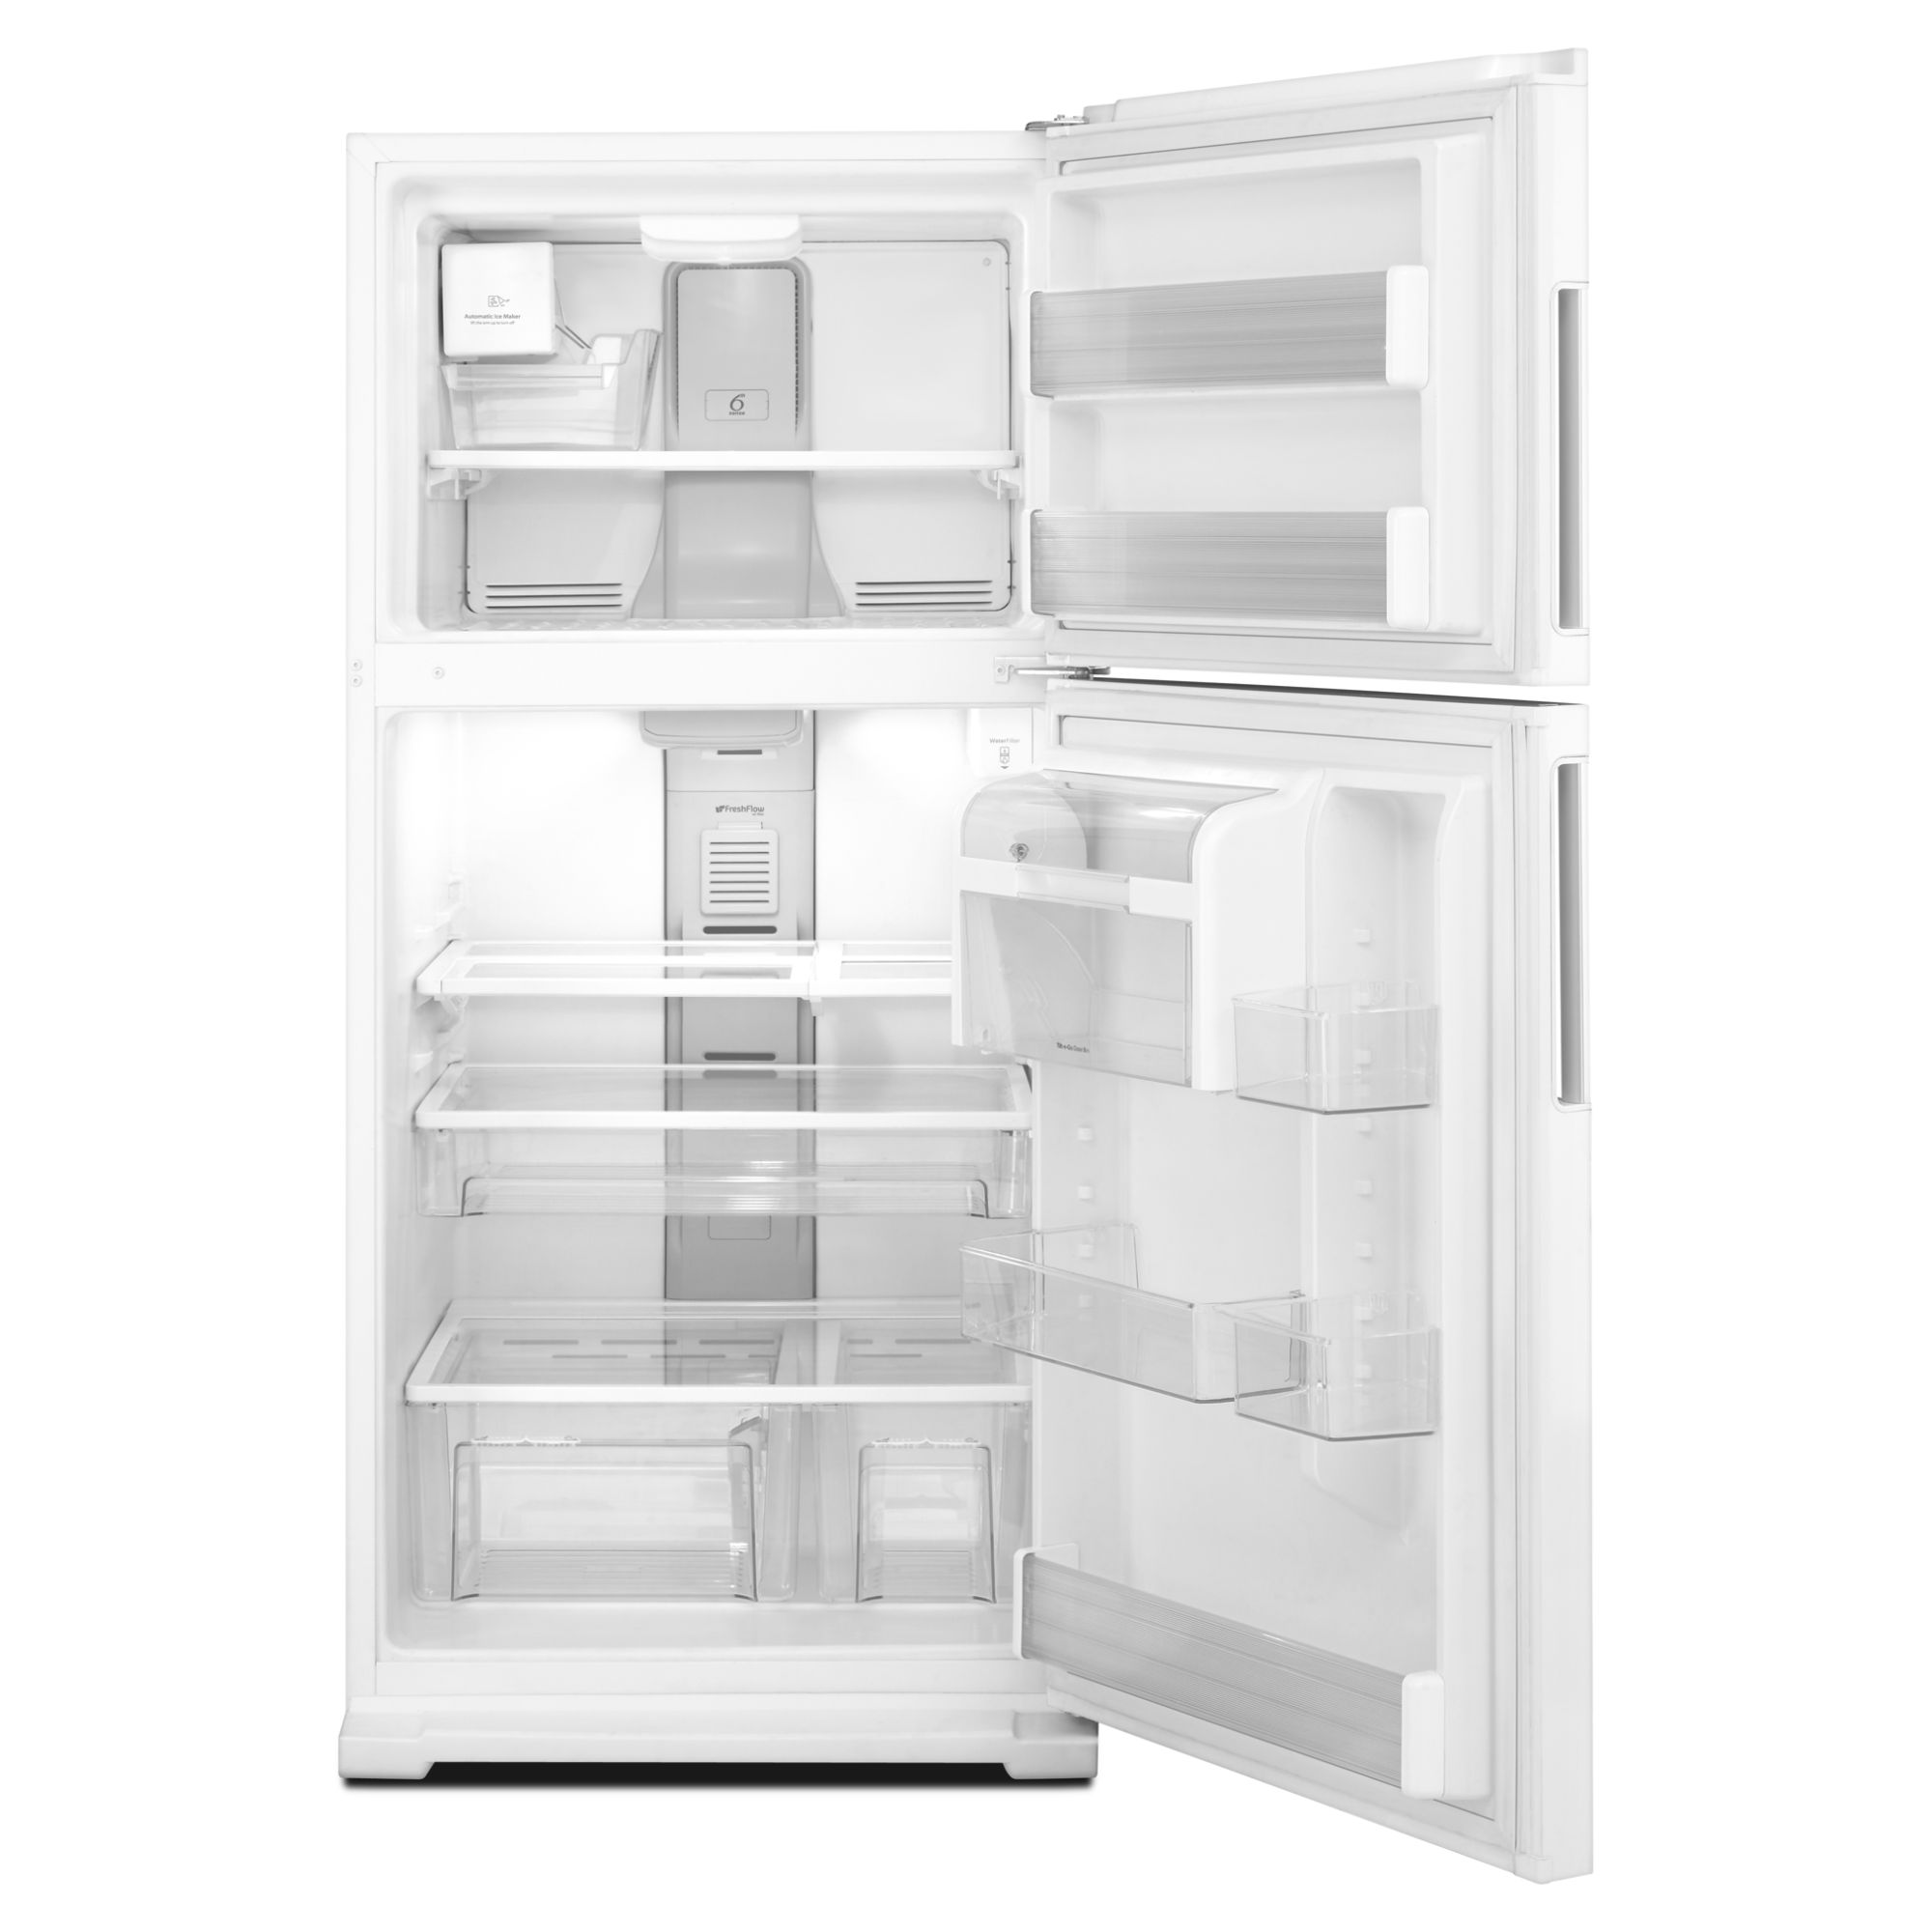 Whirlpool 21.1 cu. ft. Top-Freezer Refrigerator w/ Exterior Water Dispenser - White